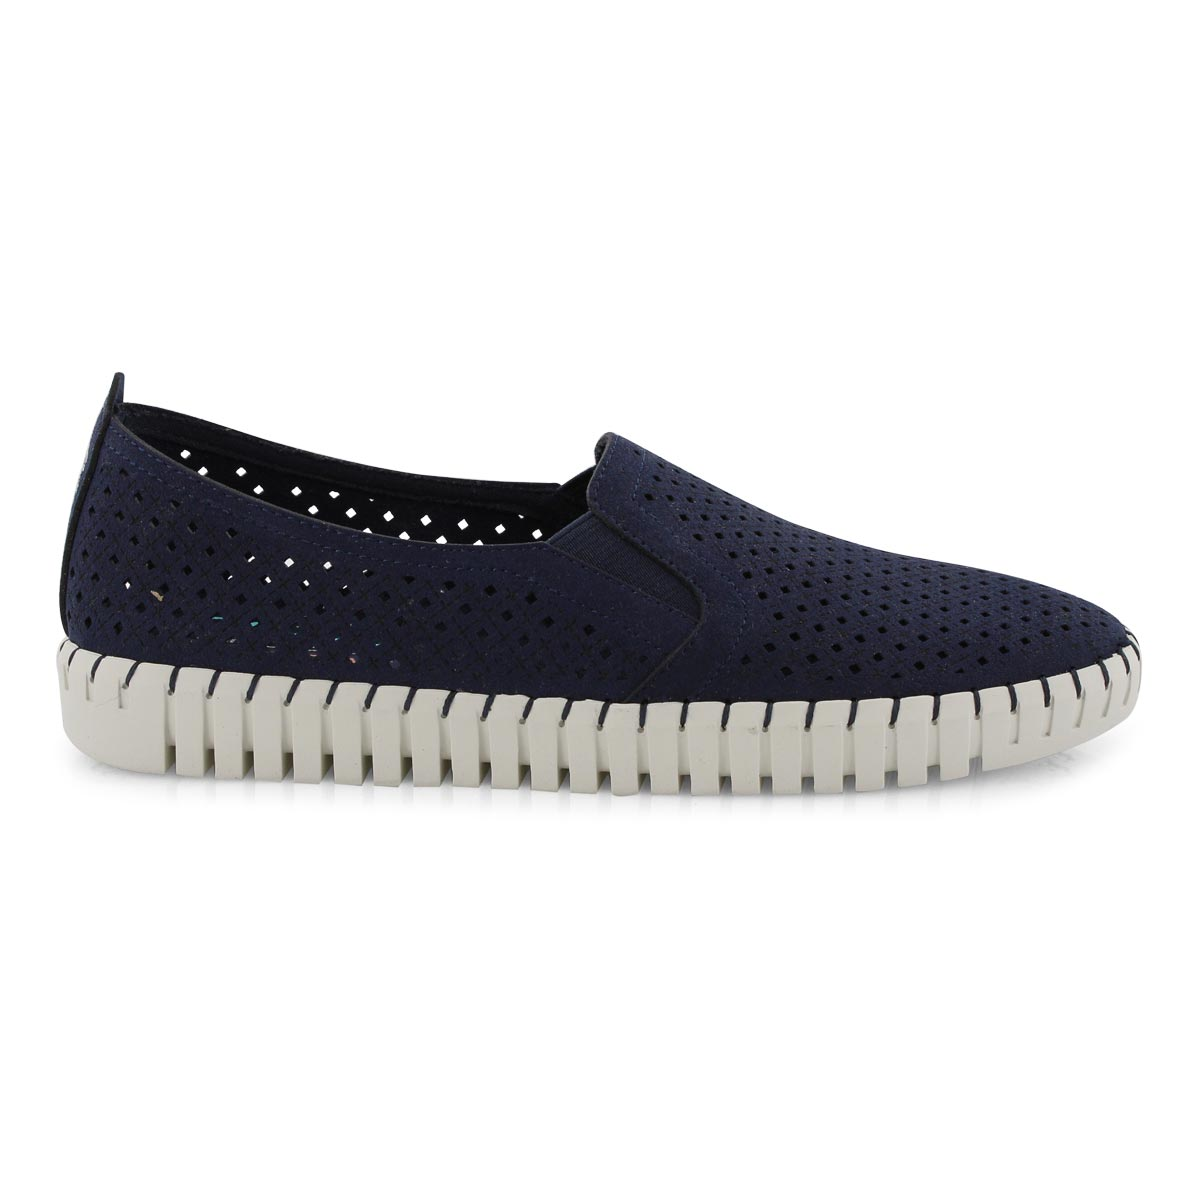 Lds Sepulveda Blvd navy slip on shoe